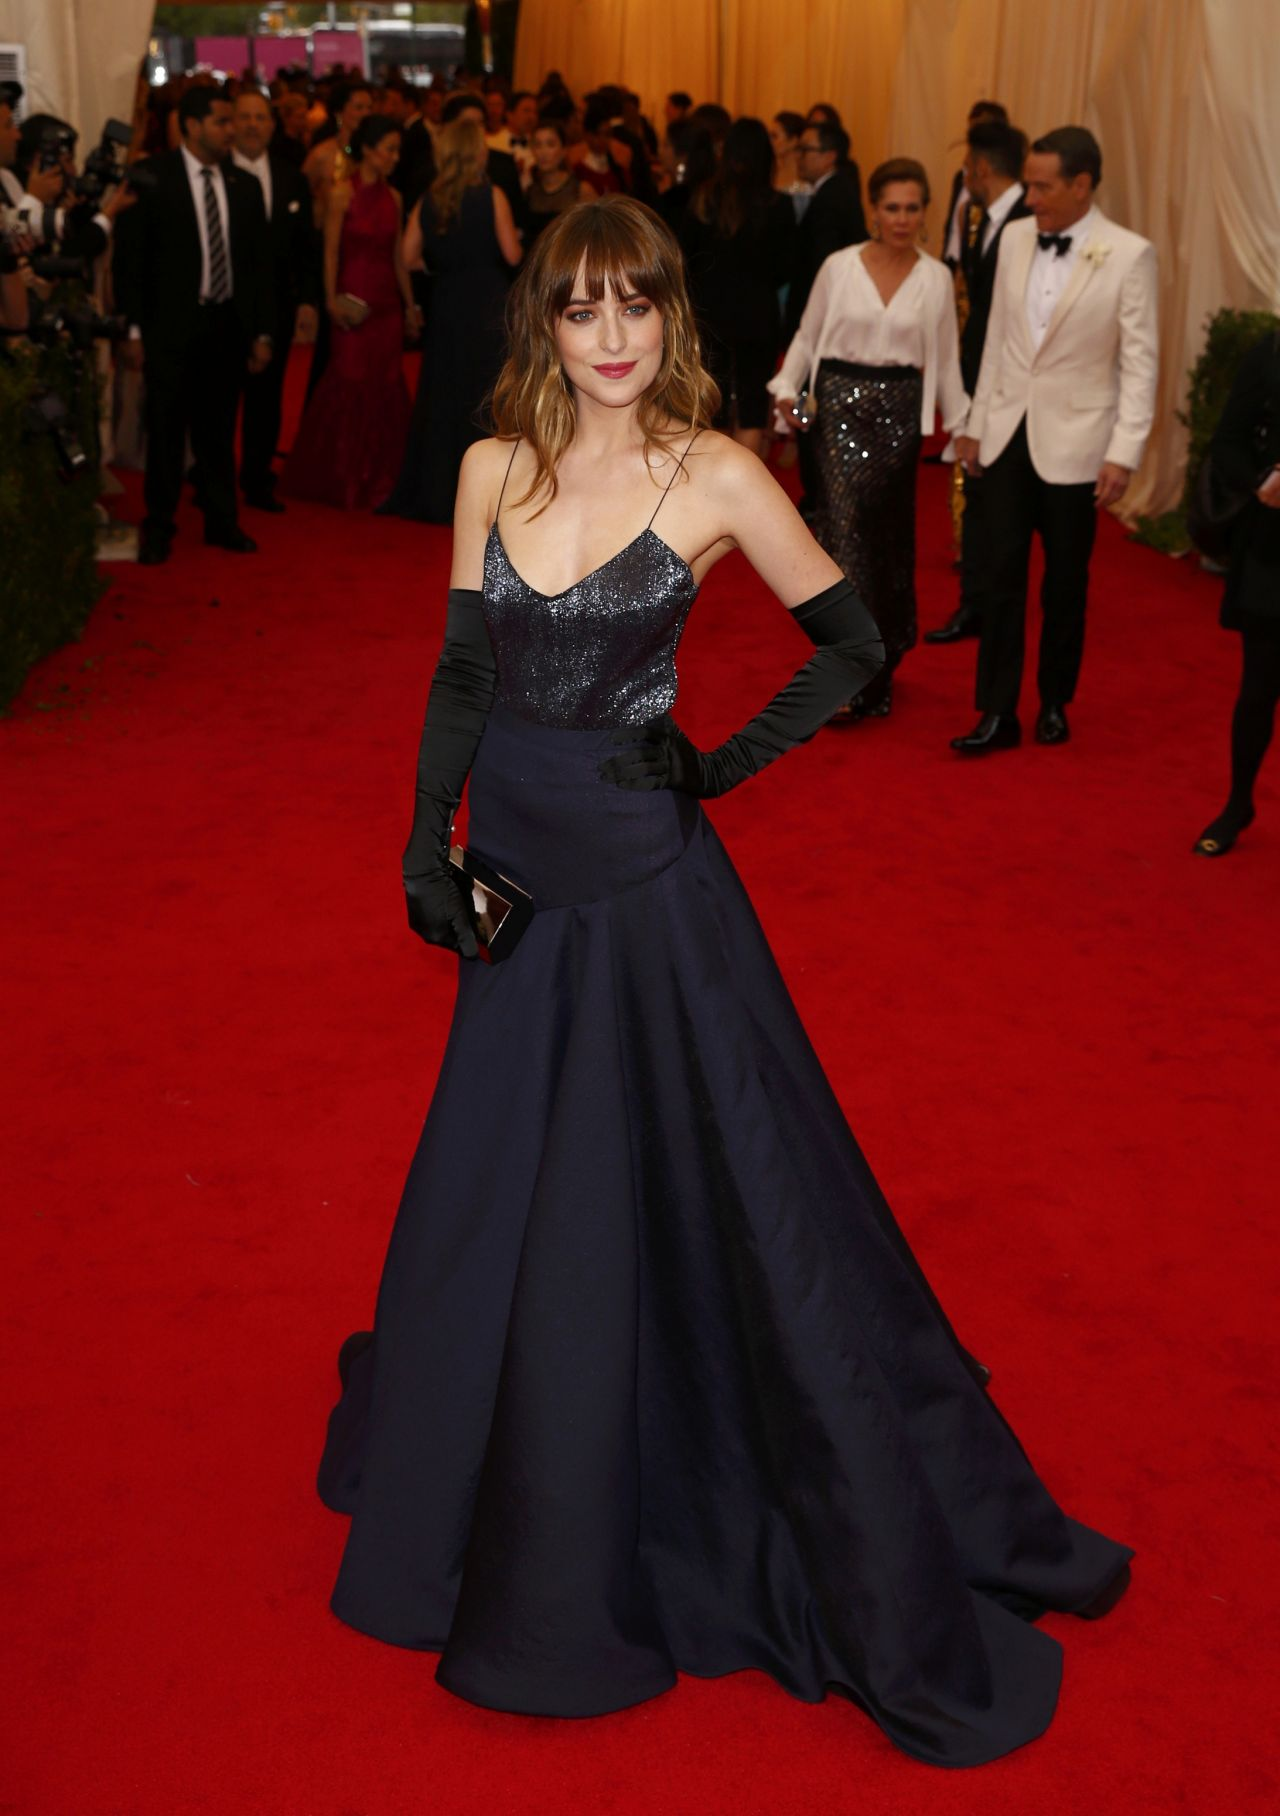 e471354af Dakota Johnson – impressions about Fifty Shades of Grey | All on Style